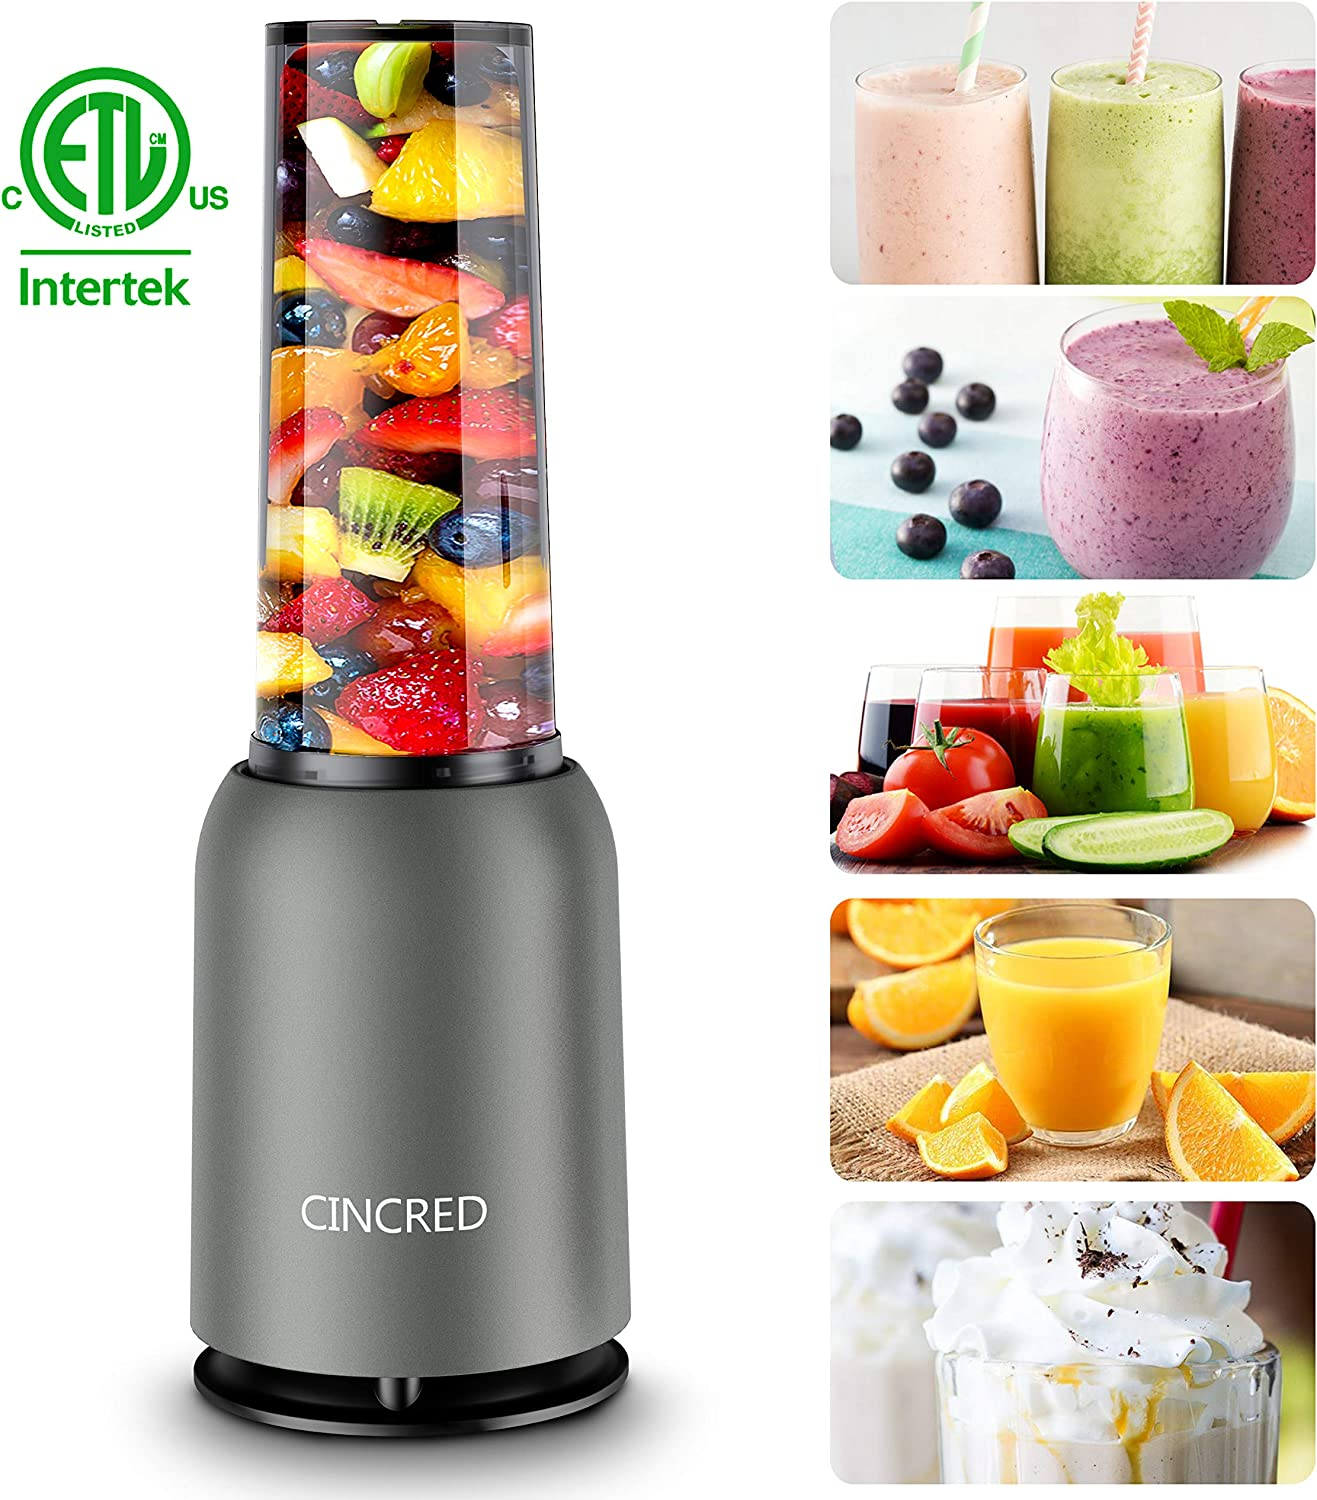 Professional Personal Countertop Blender for Protein Shakes